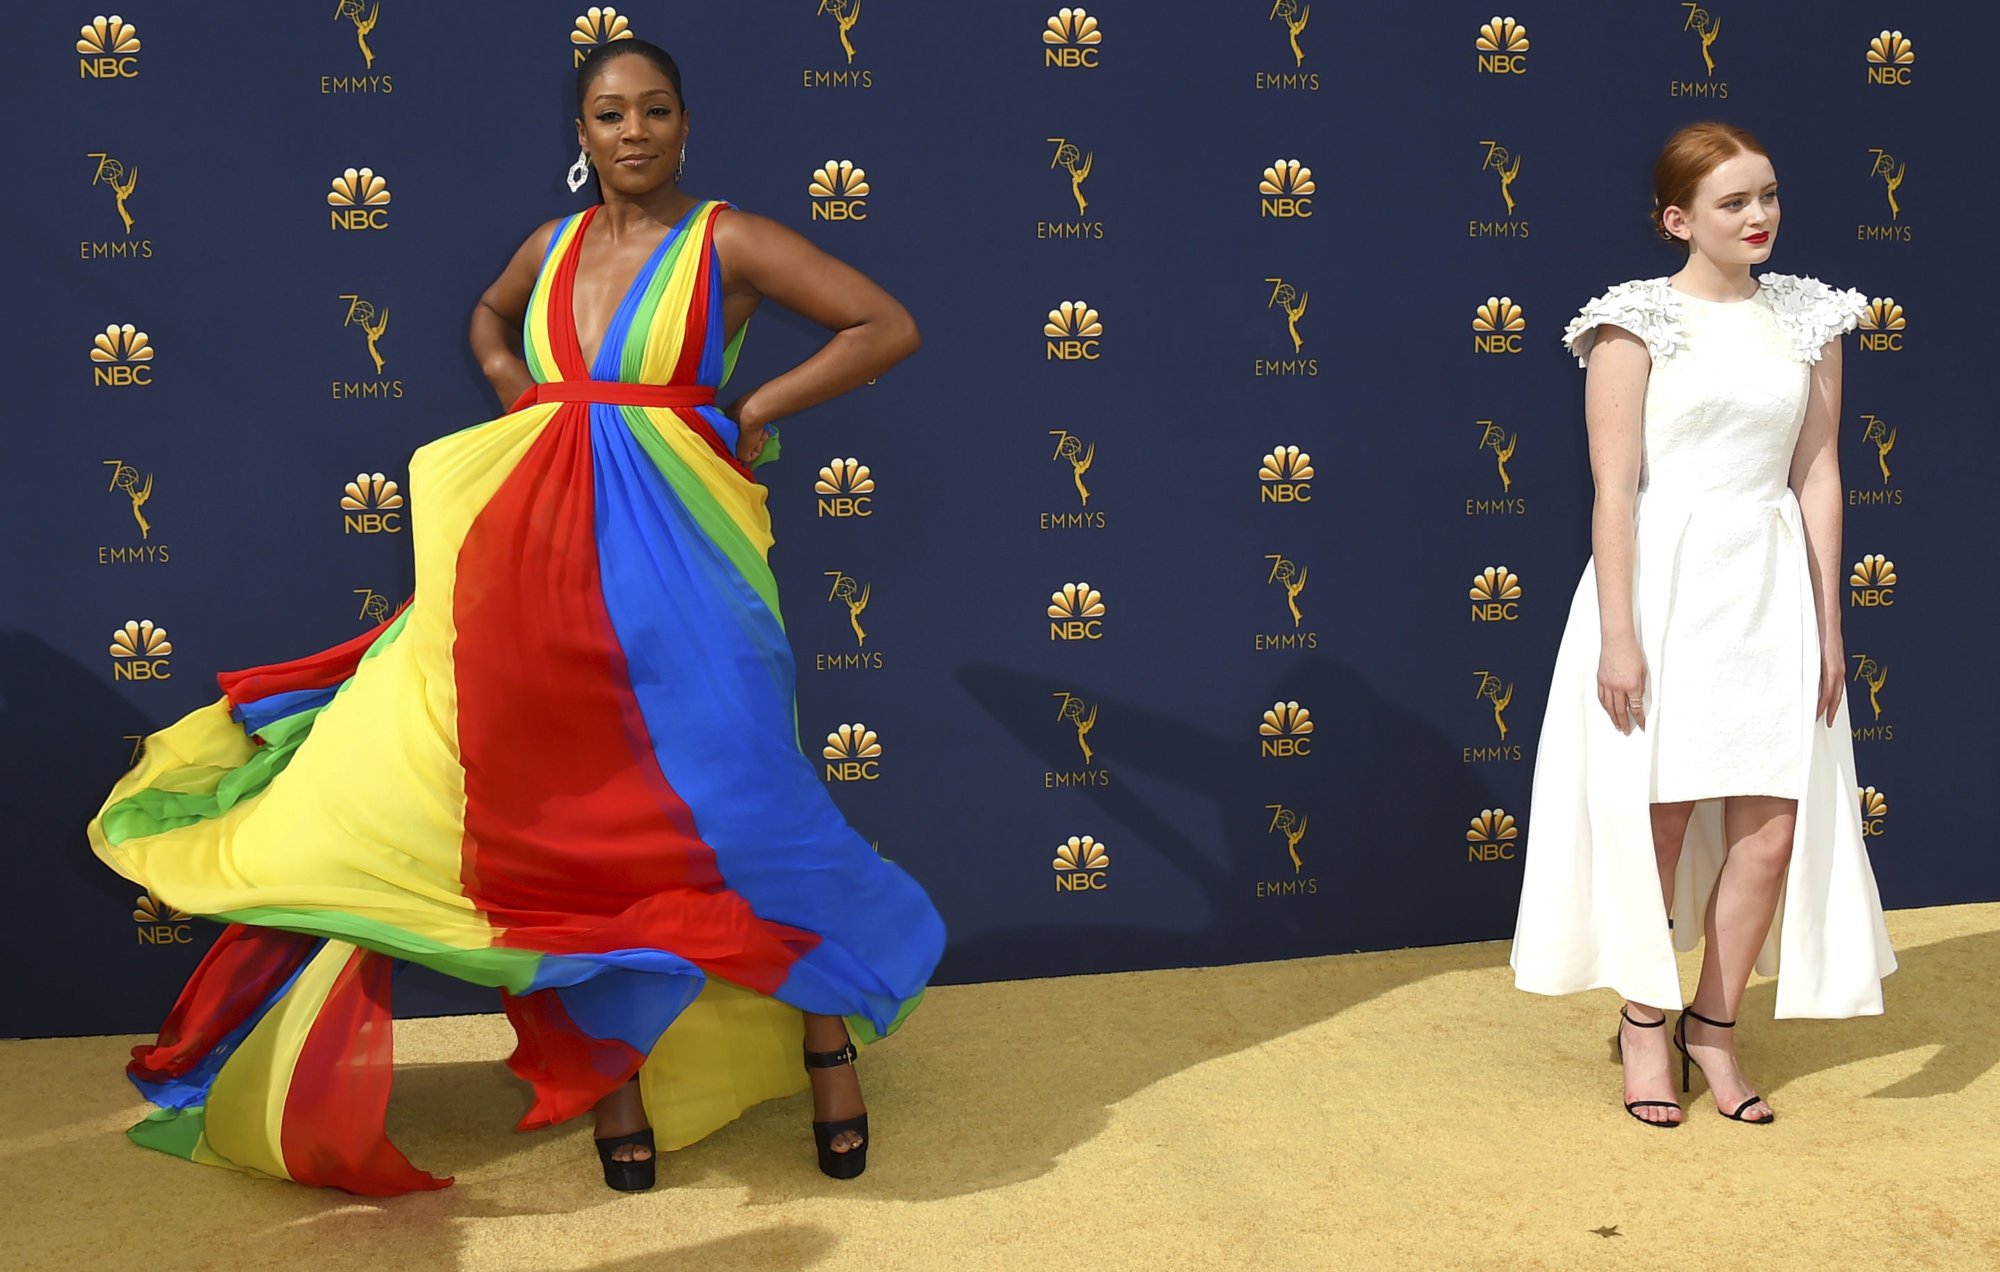 Tiffany Haddish, left, and Sadie Sink arrive at the 70th Primetime Emmy Awards on Monday, Sept. 17, 2018, at the Microsoft Theater in Los Angeles. (Photo by Jordan Strauss/Invision/AP)